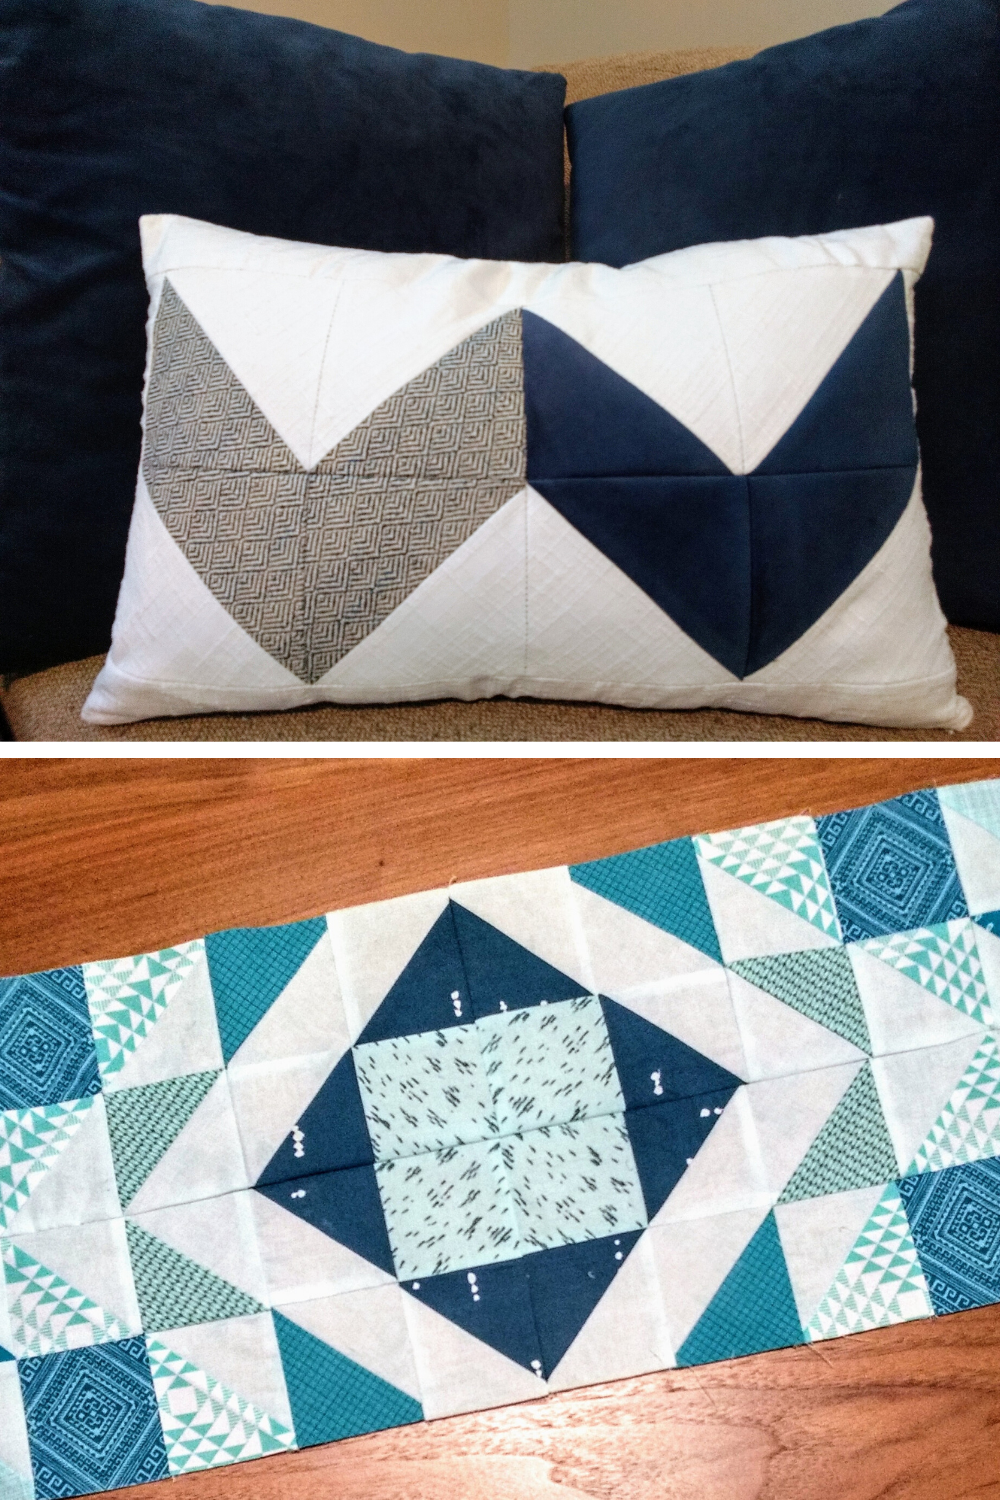 Navy, gray and white Double Chevron quilted lumbar pillow + Turquoise and teal Modern Aztec quilted table runner | Modern quilt patterns | Shannon Fraser Designs #quiltedpillow